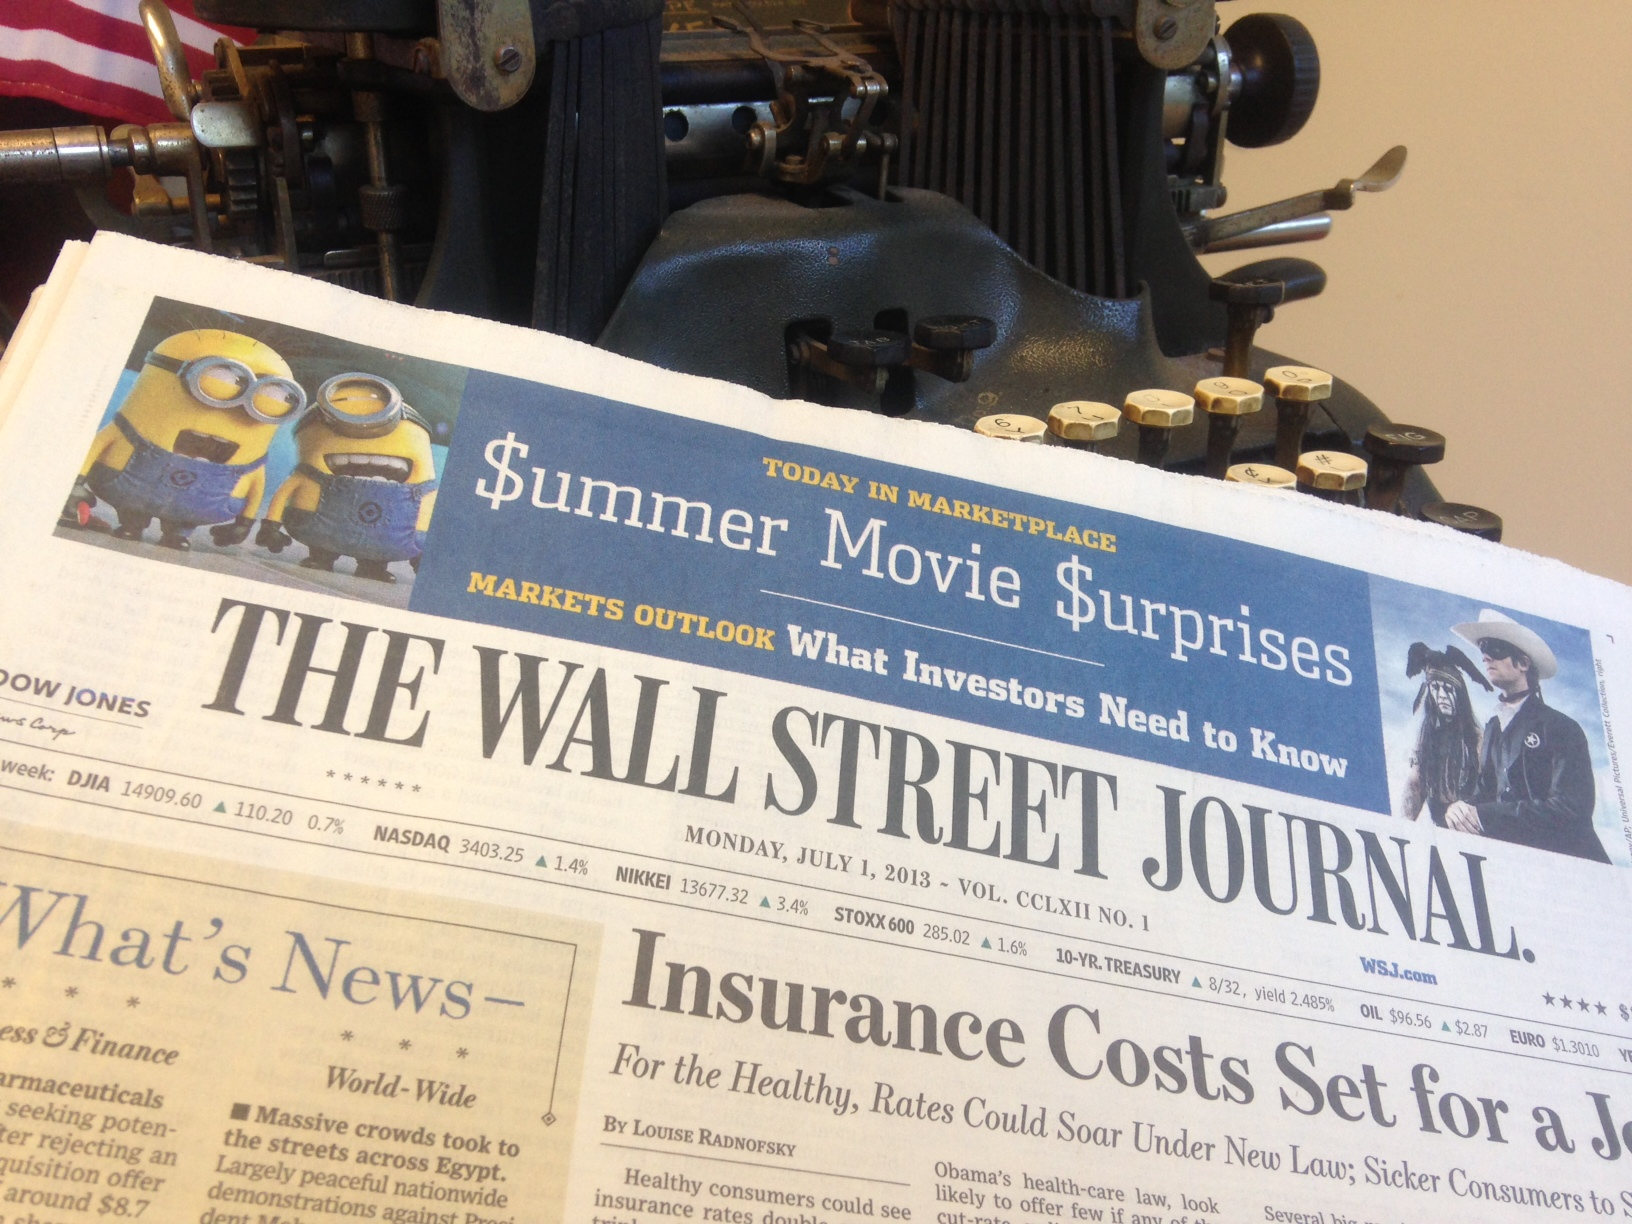 WSJ is Too Old to Appreciate Venture Capital